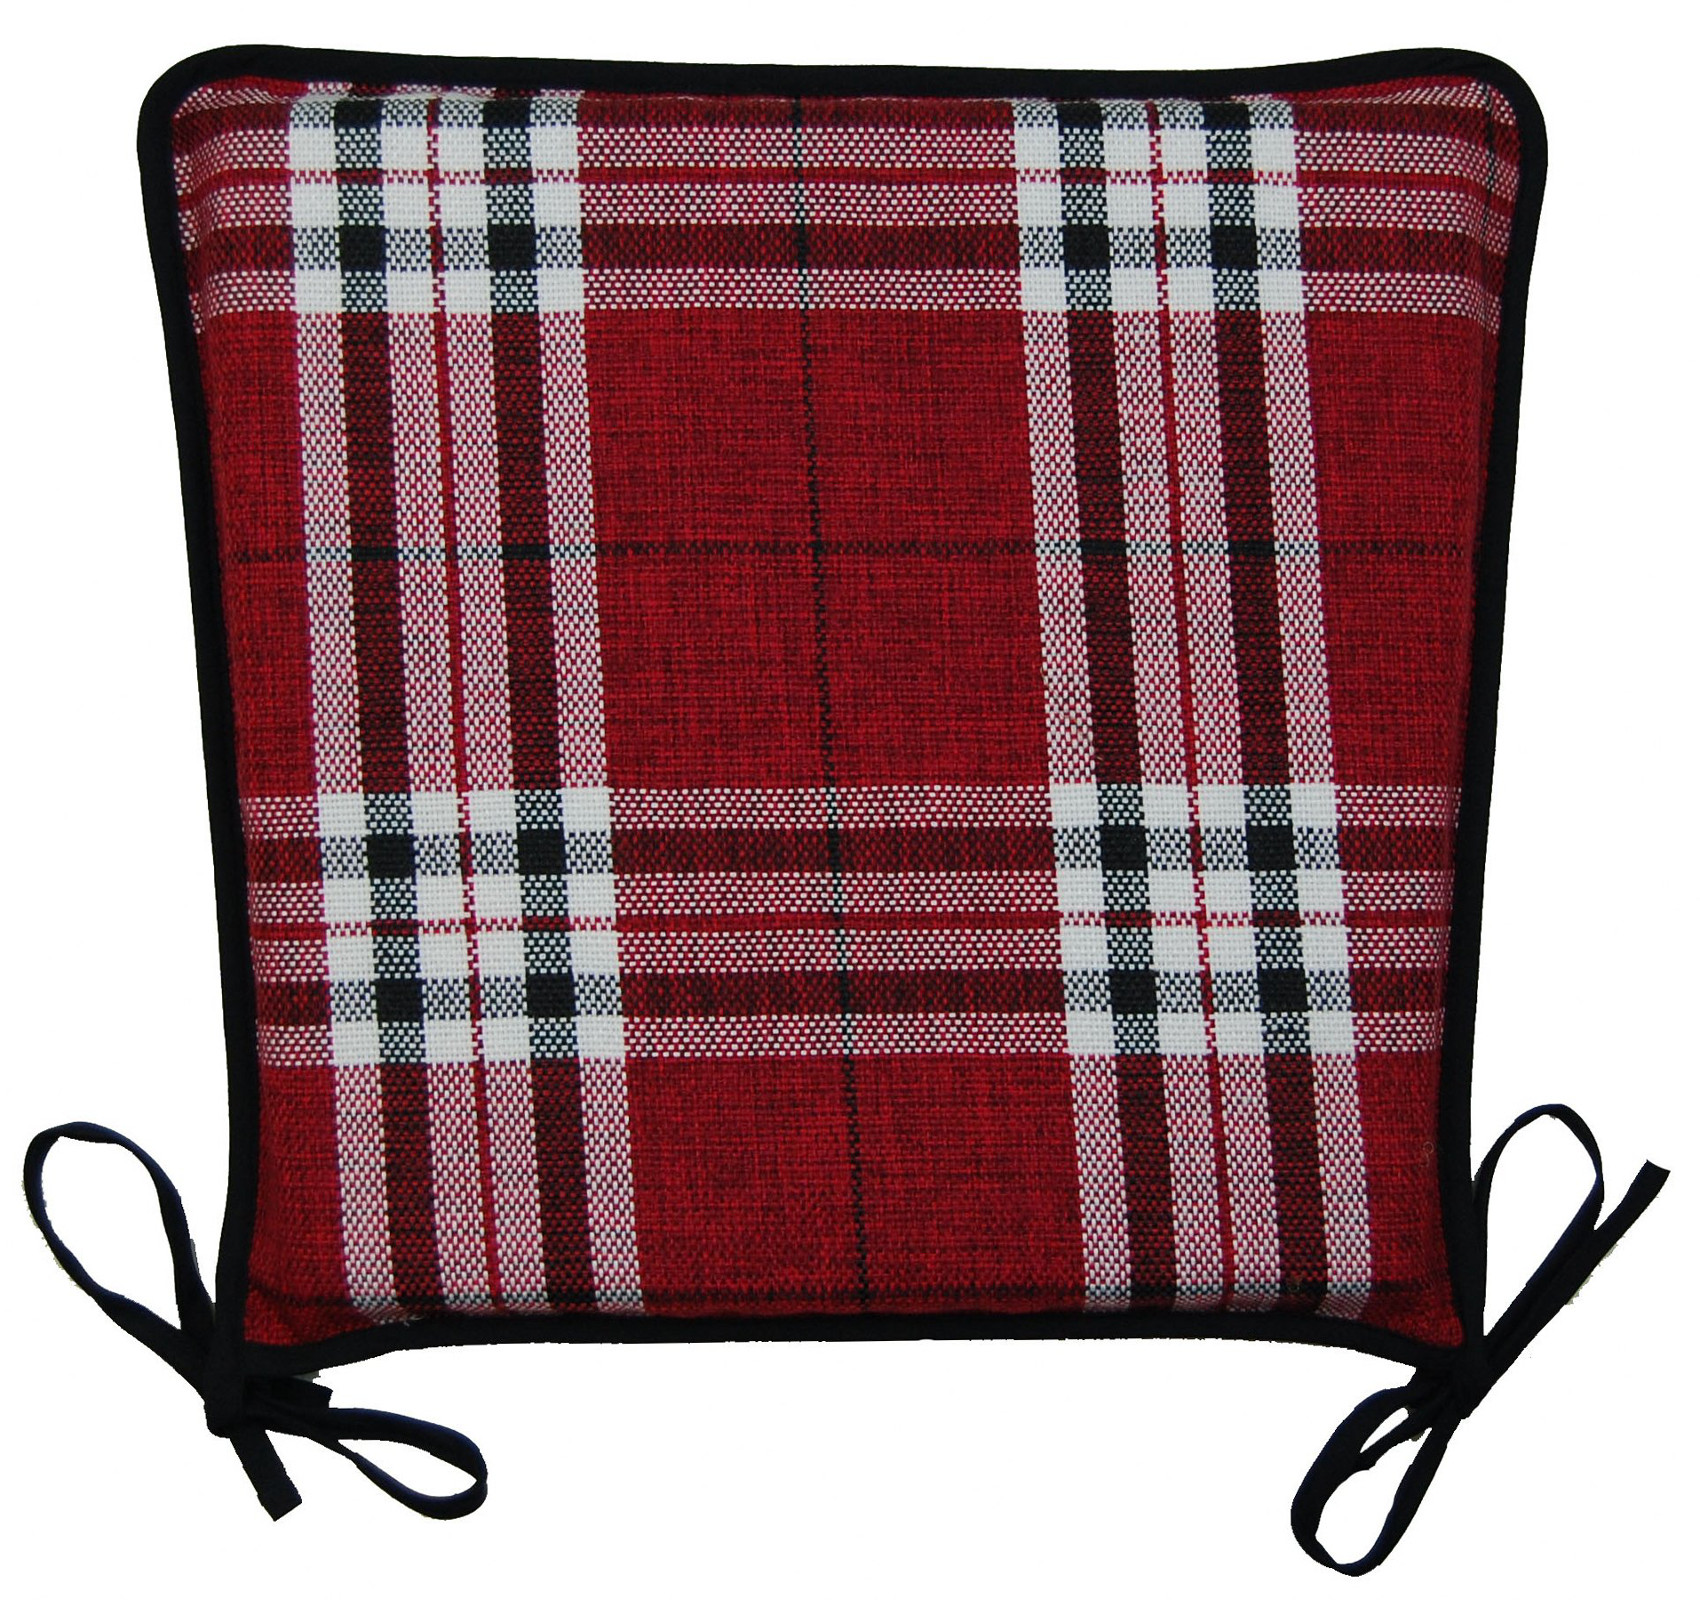 kitchen chair cusions. Kitchen Seat Pad 100% Polyester Tartan Check Garden Dining Square Chair Cushion Cusions